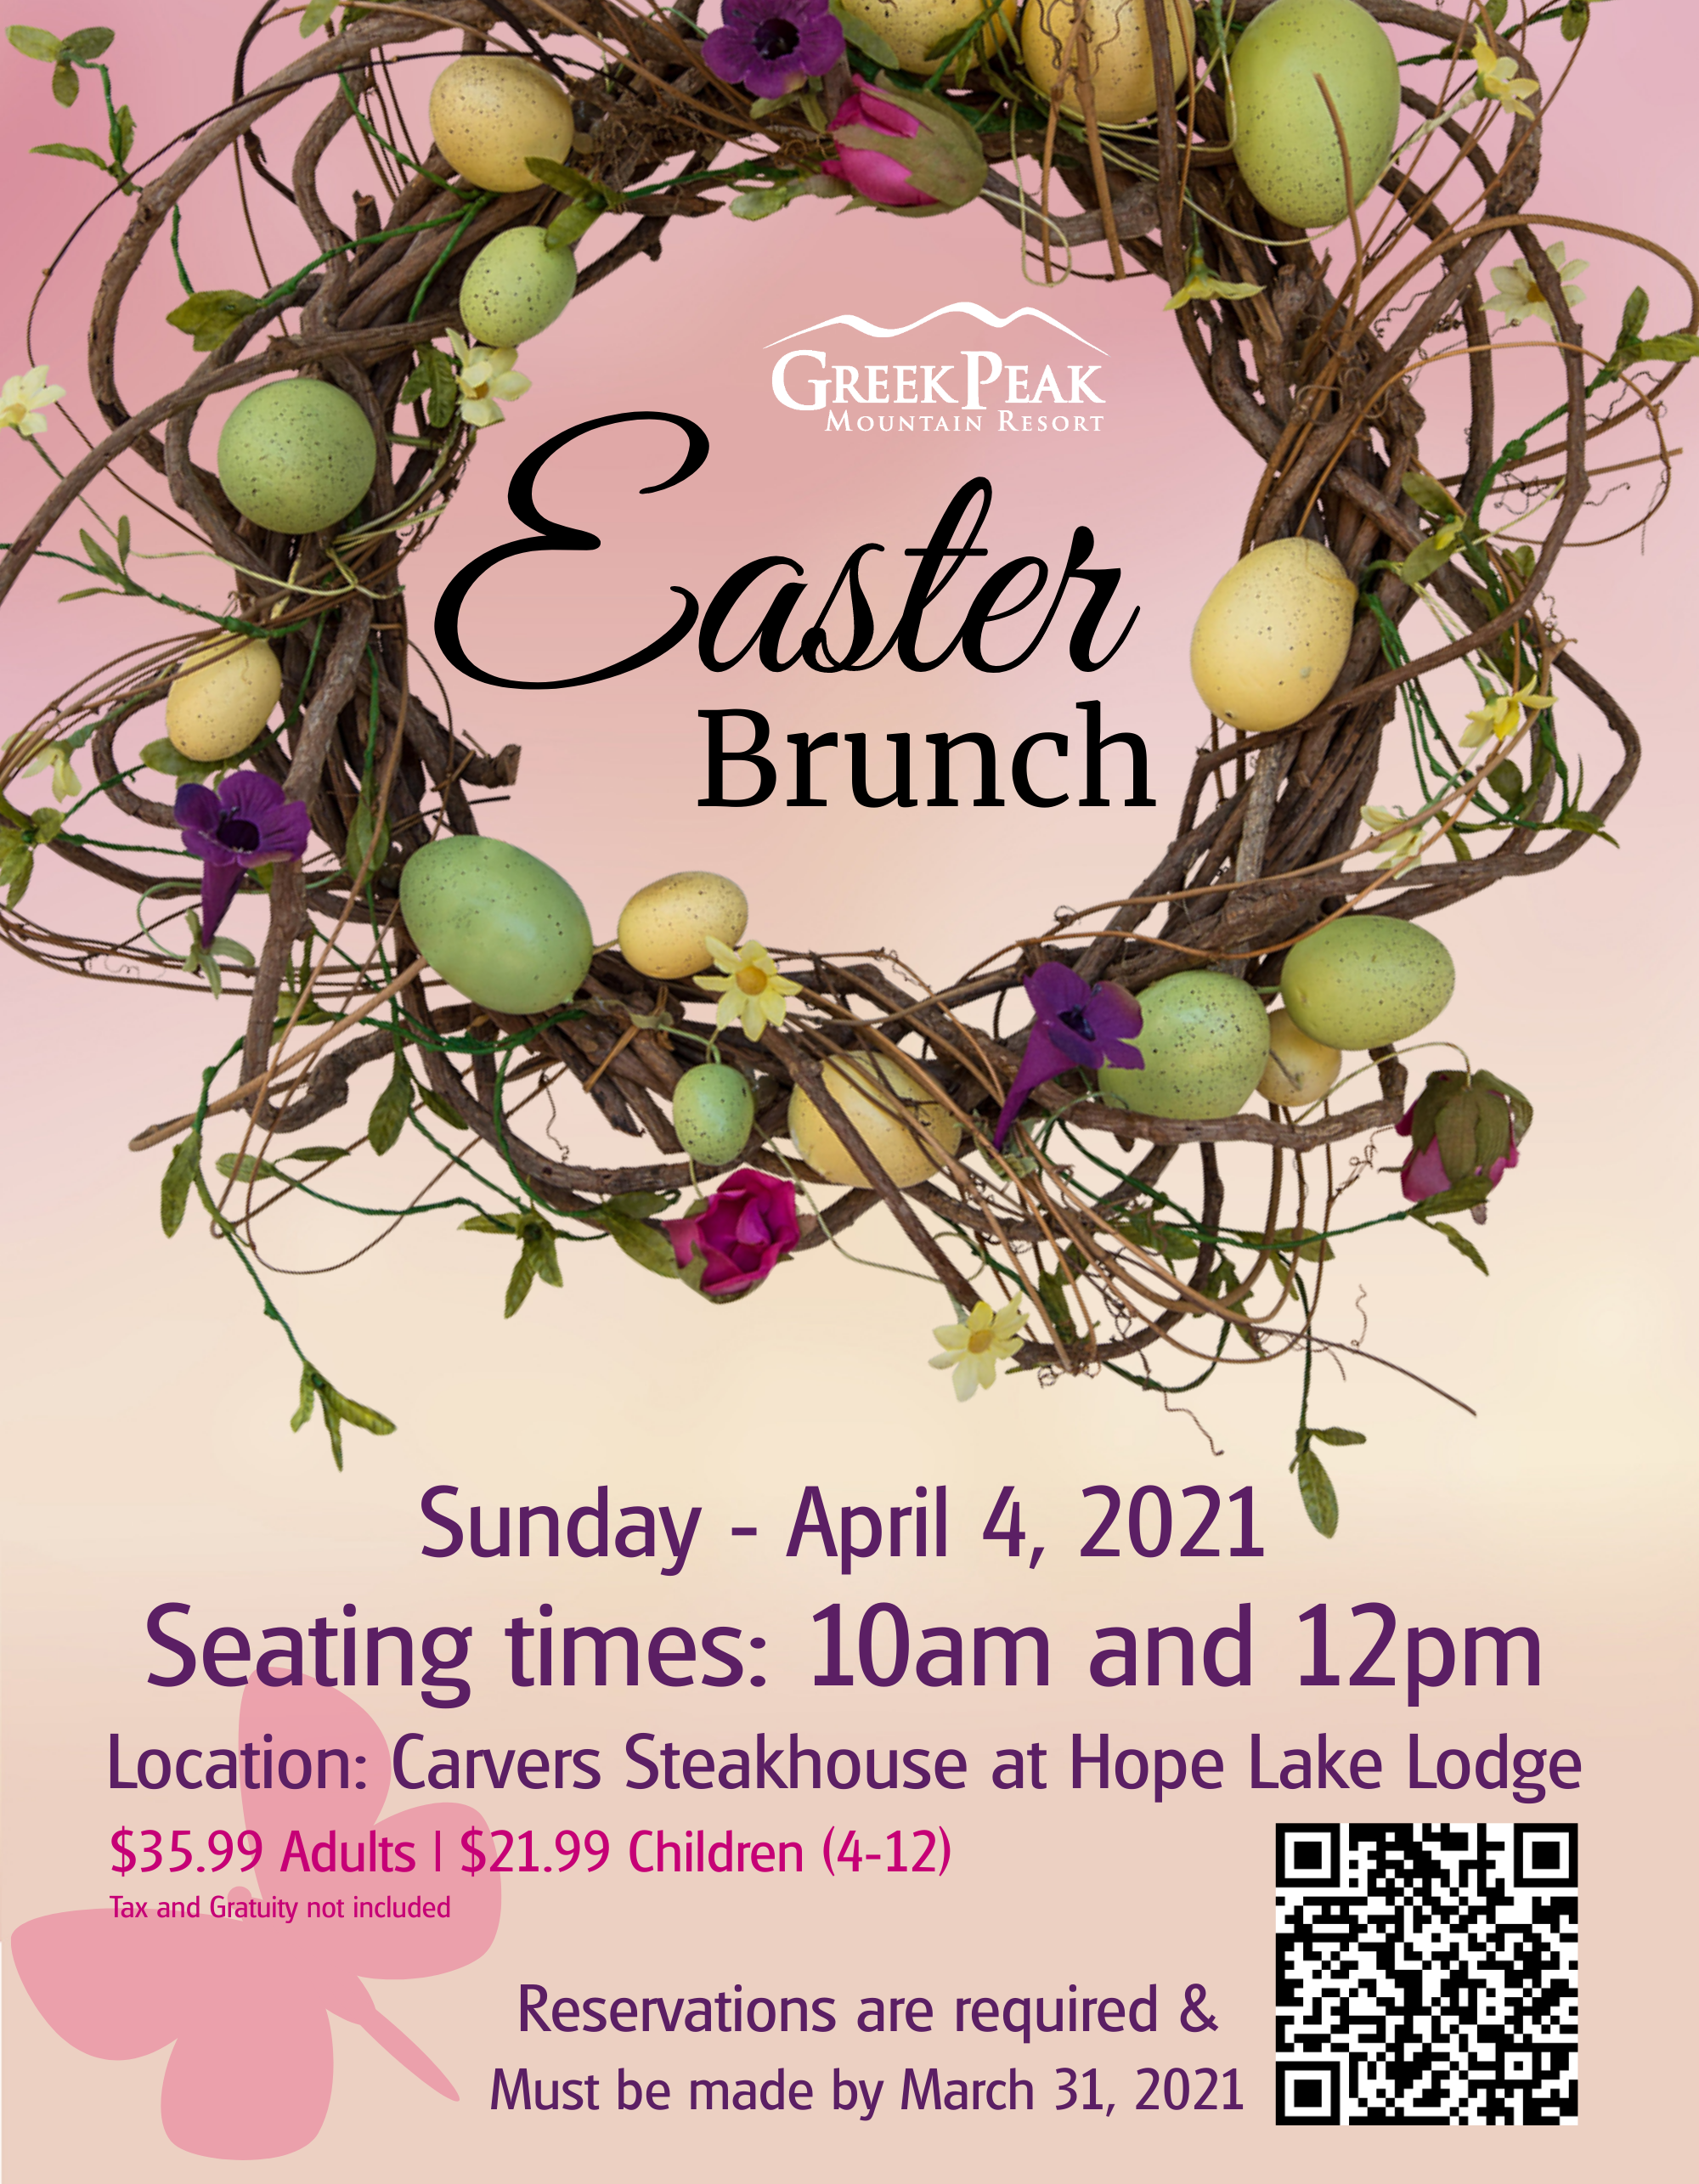 Easter Brunch poster. It has a decorative wreath on it with the Greek Peak logo, Sunday, April 4, 2021 Seating times: 10am and 12pm. Location: Carvers Steakhouse at Hope Lake Lodge. $35.99 for adults and $21.99 for children ages 4-12. Tax and gratuity not included. Reservations are required and must be made by March 31st. There is a picture of a Q&R code as well in the bottom right hand corner.